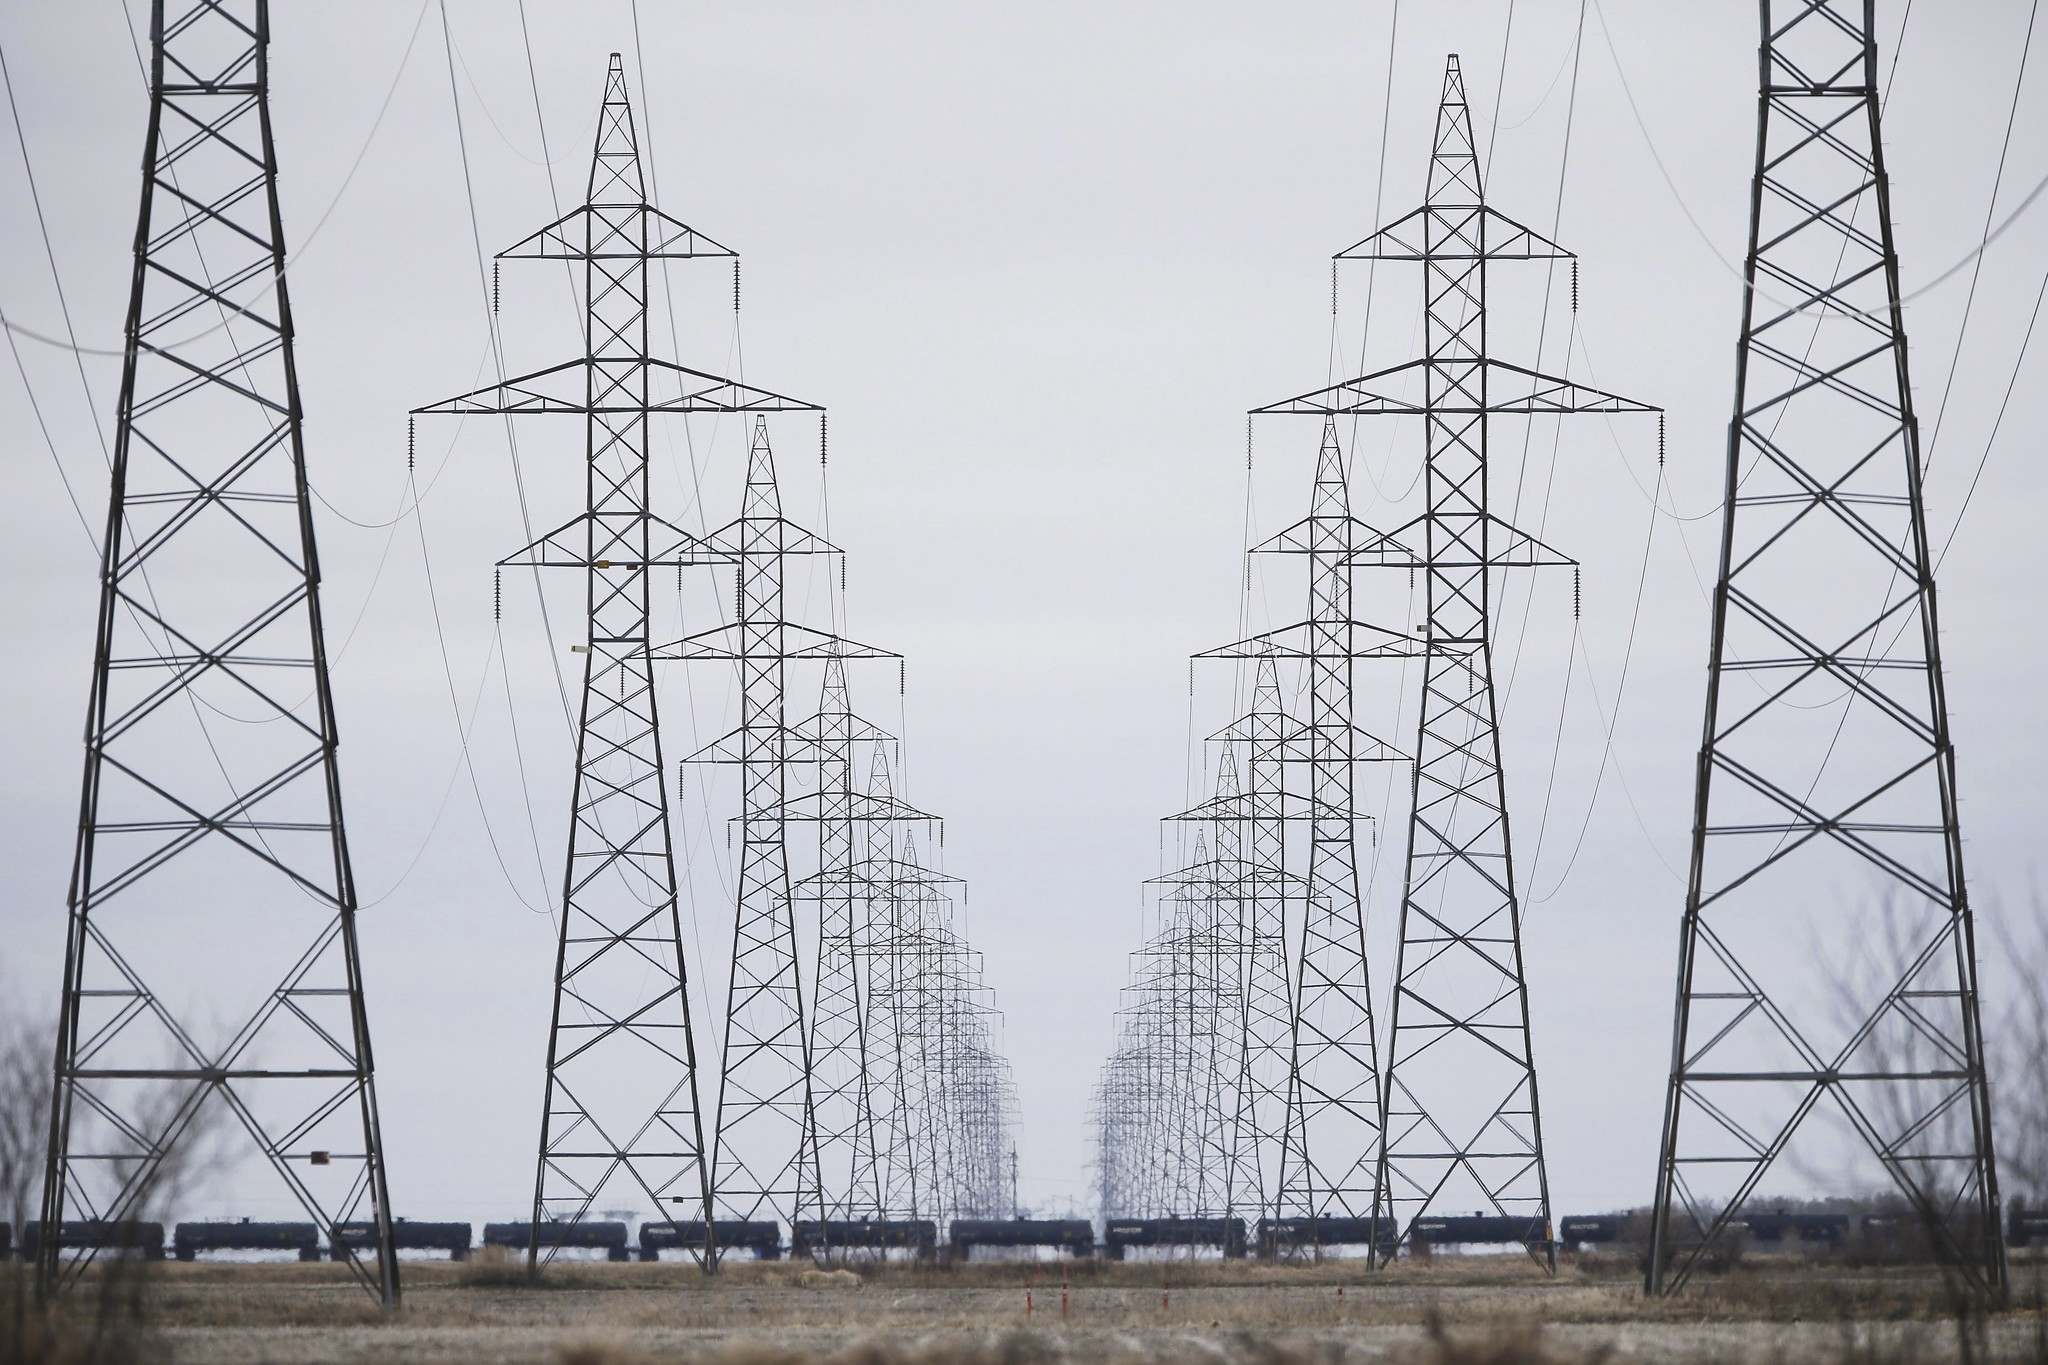 Will give relief for electricity consumption up to 600 units if we win: Delhi Congress unit chief